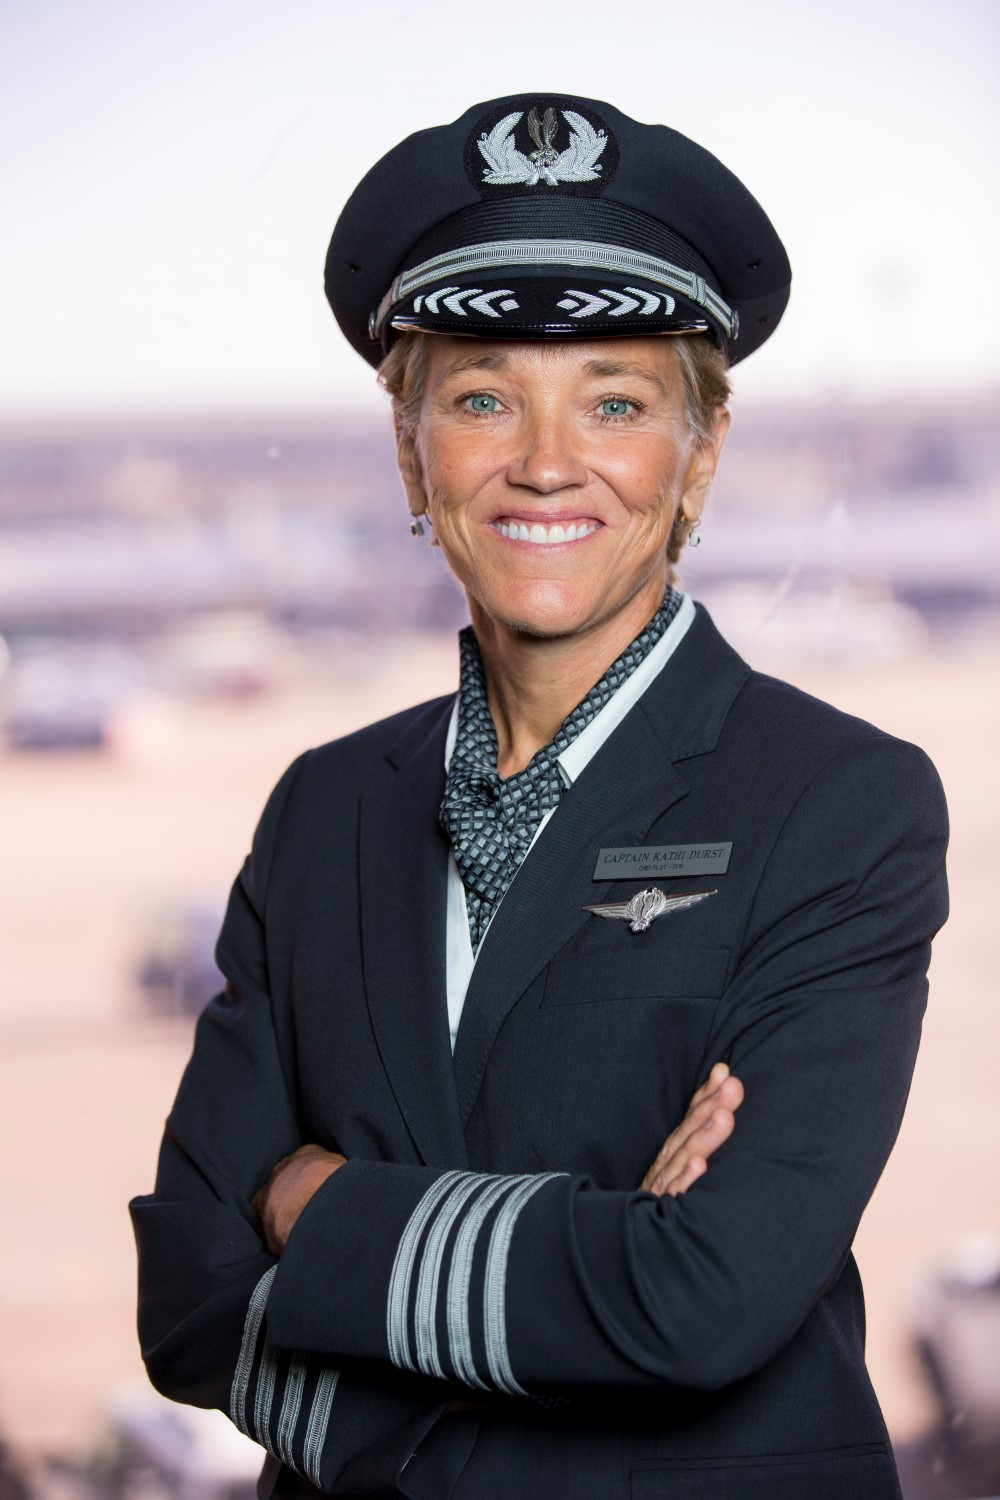 Durst is now a chief pilot at American's DFW base. Image: Kathi Durst